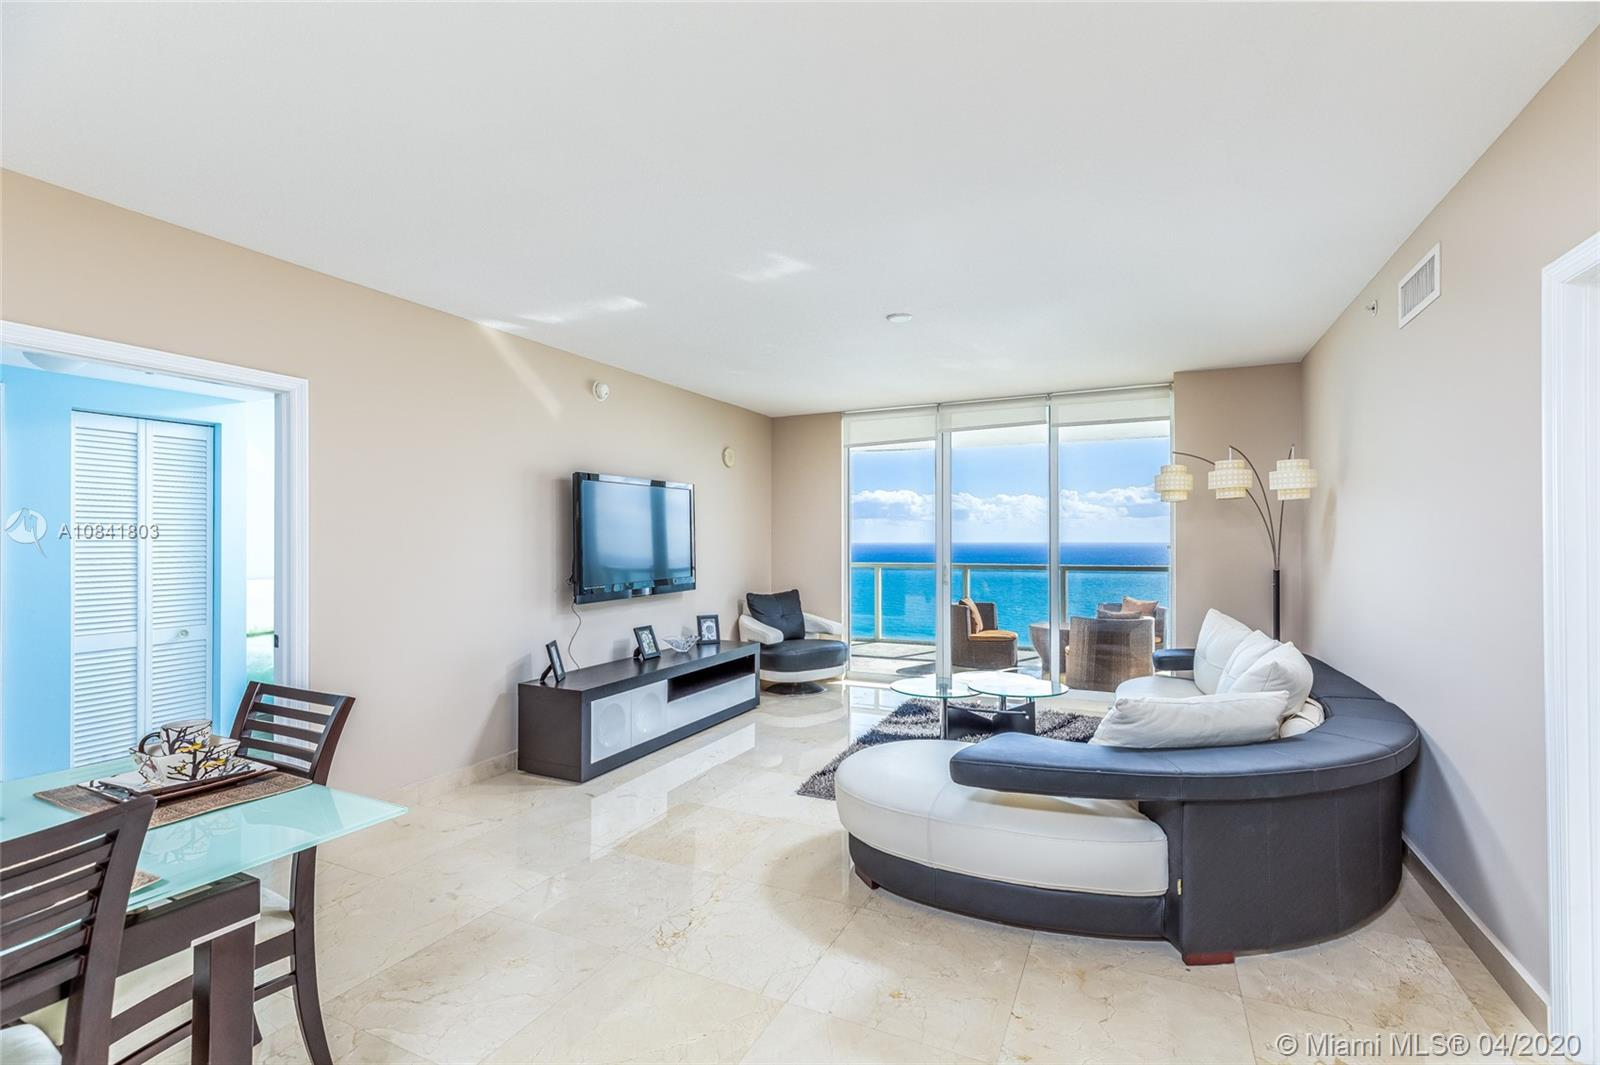 High-floor excellent condition 2 bedroom 2.5 baths condo on the East side of the luxury oceanfront b